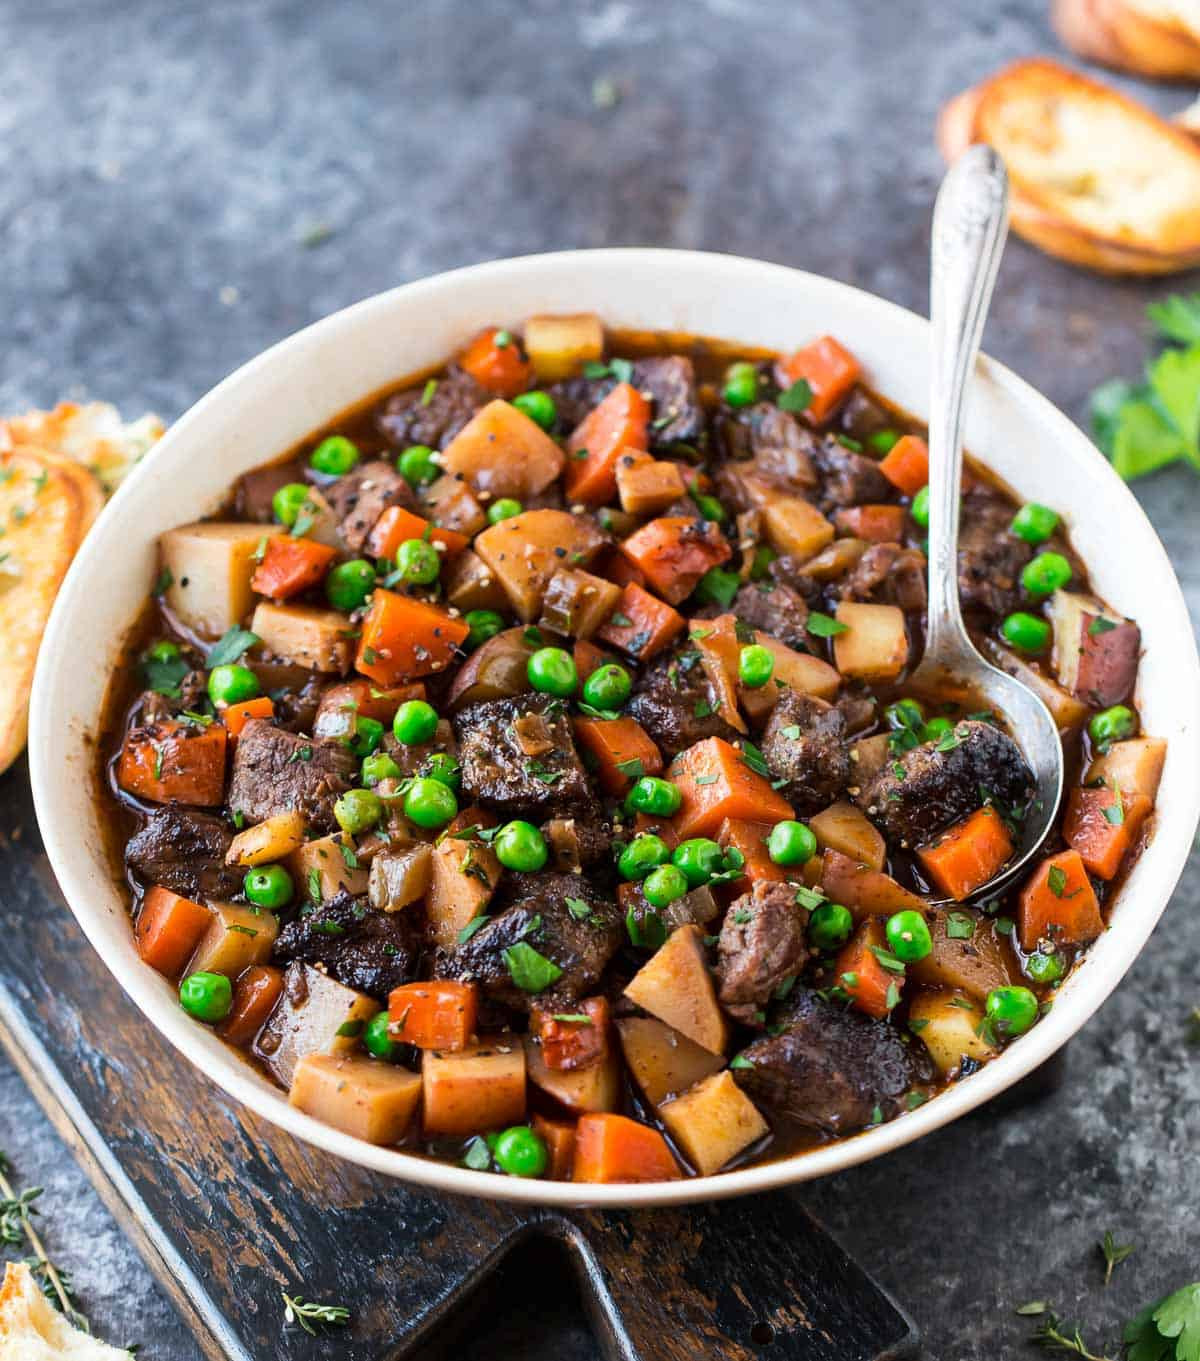 Crock Pot Ground Beef Recipes Healthy  Crock Pot Beef Stew Recipe